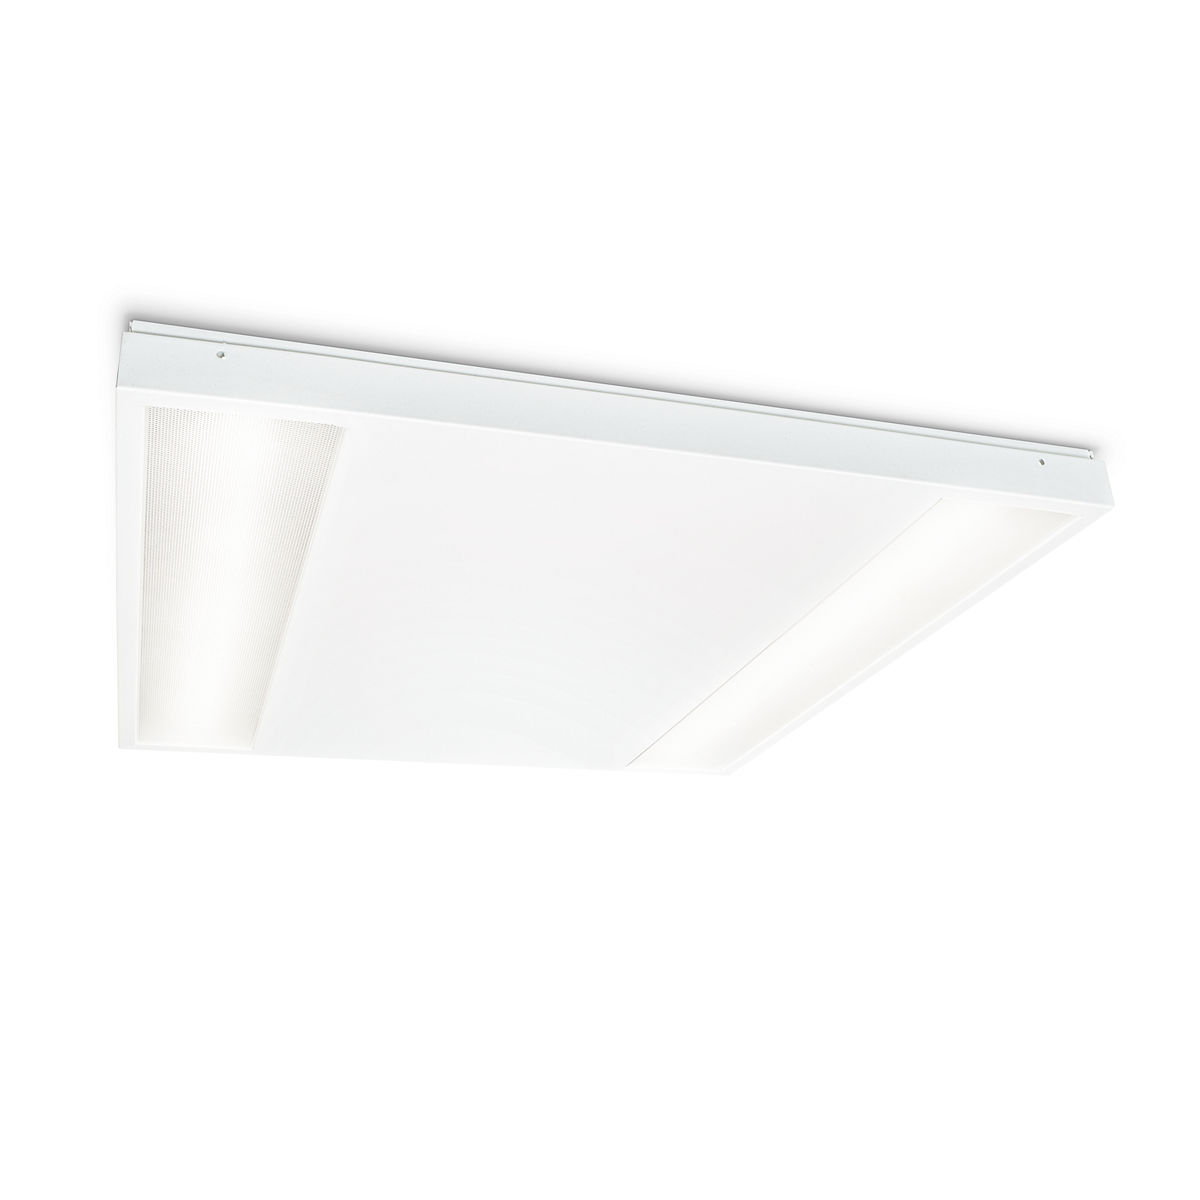 Luminaire philips led